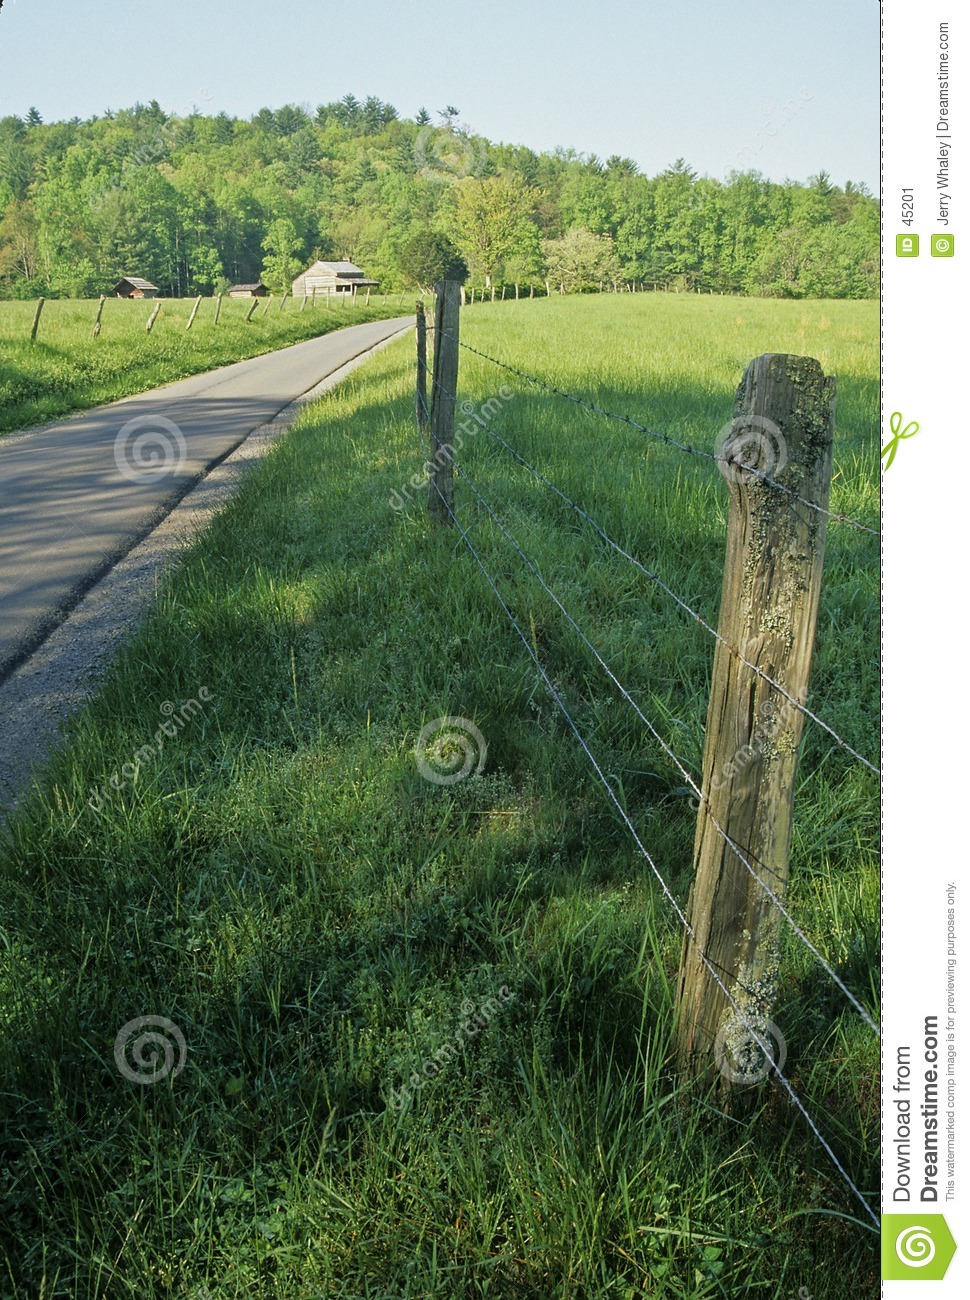 Fence, Road, Cabin, Spring